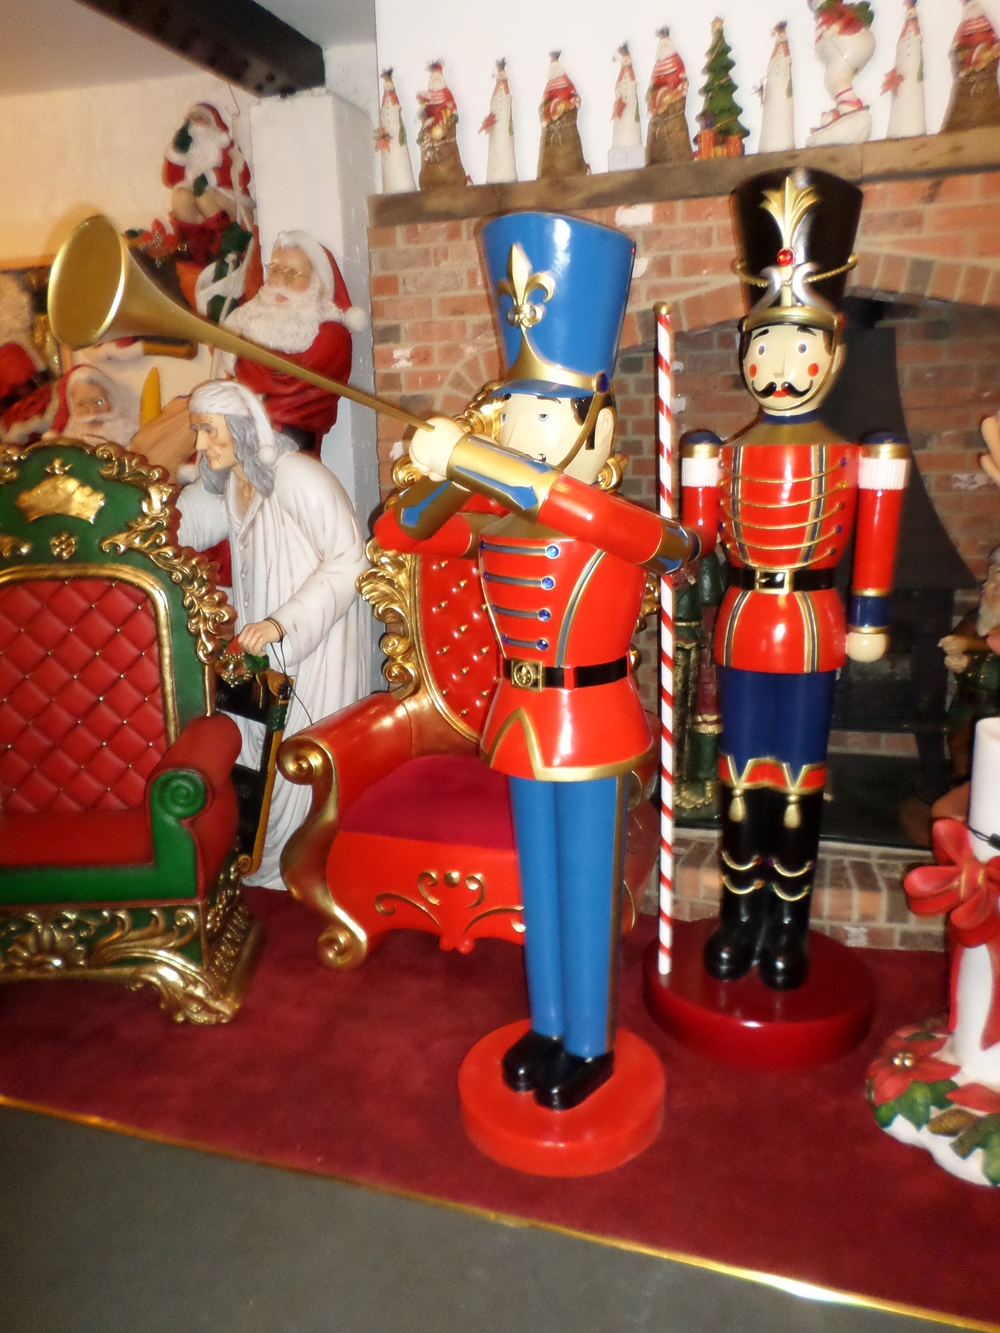 toy soldier with trumpet 6ft jr 140007 thumbnail 01 - Christmas Toy Soldiers